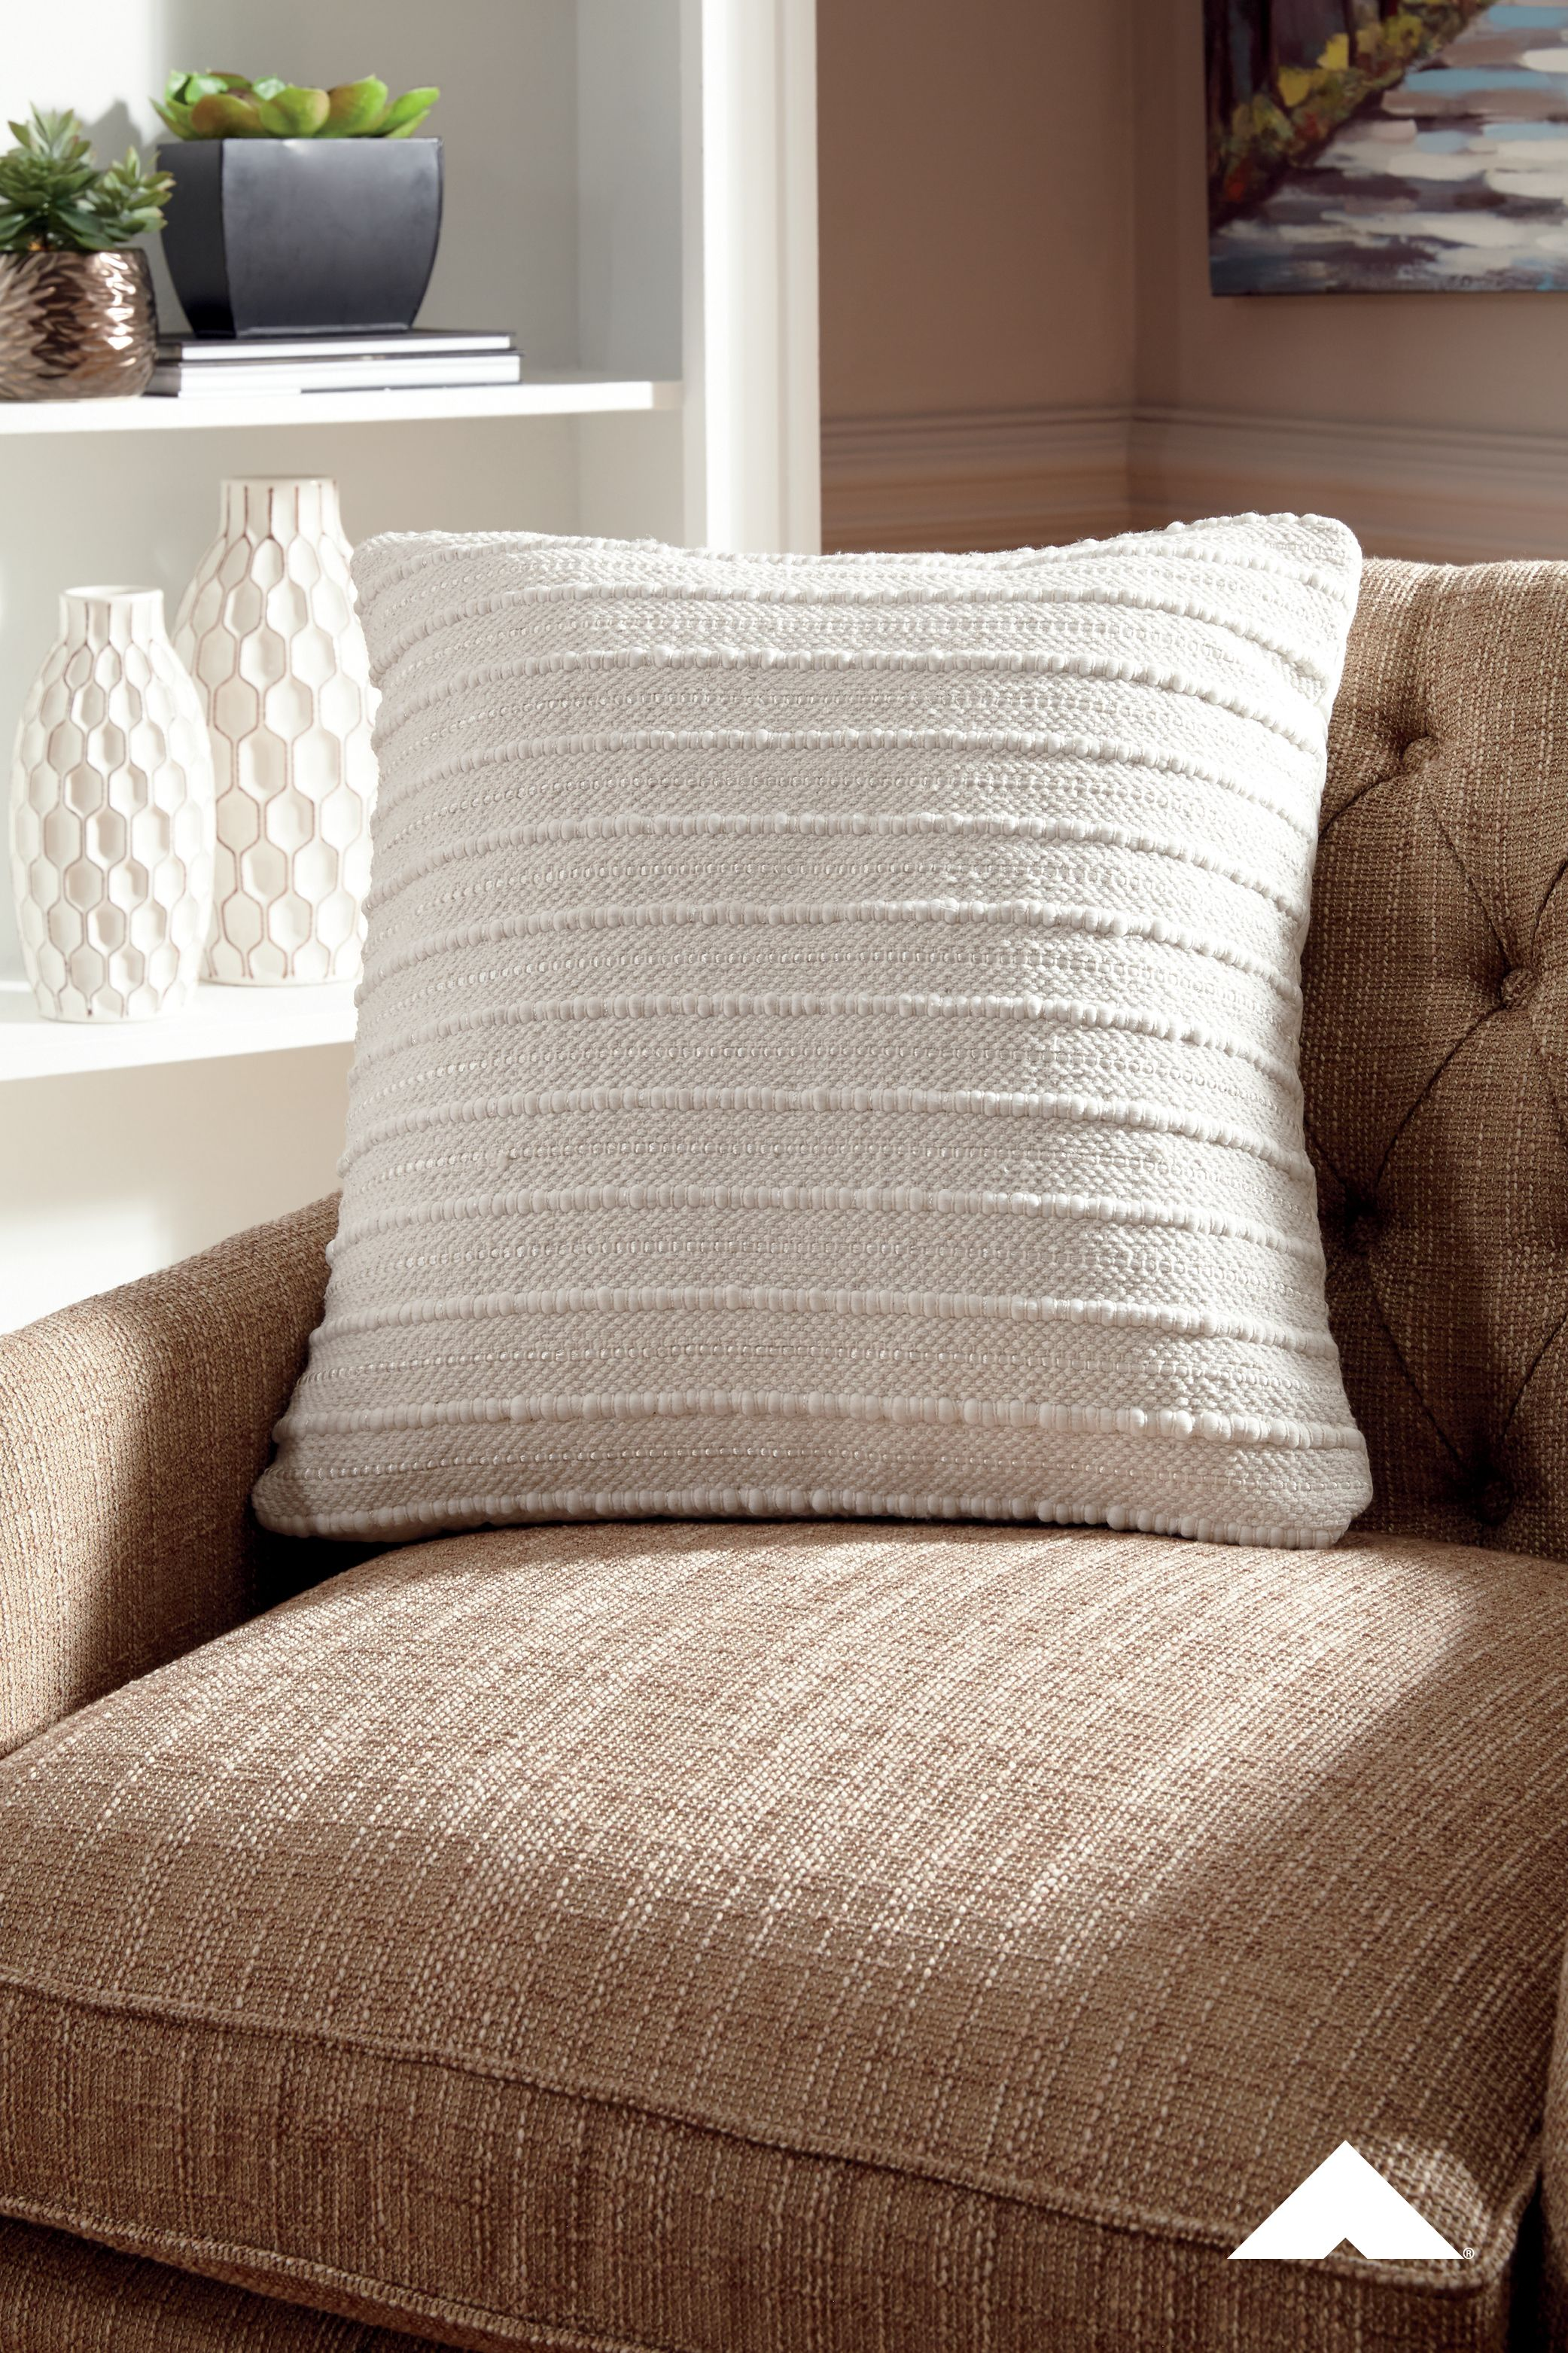 Theban Cream Pillow By Ashley Furniture Delighting With Handwoven Details The Exceptionally Versatile Accent In Is Truly A Dream